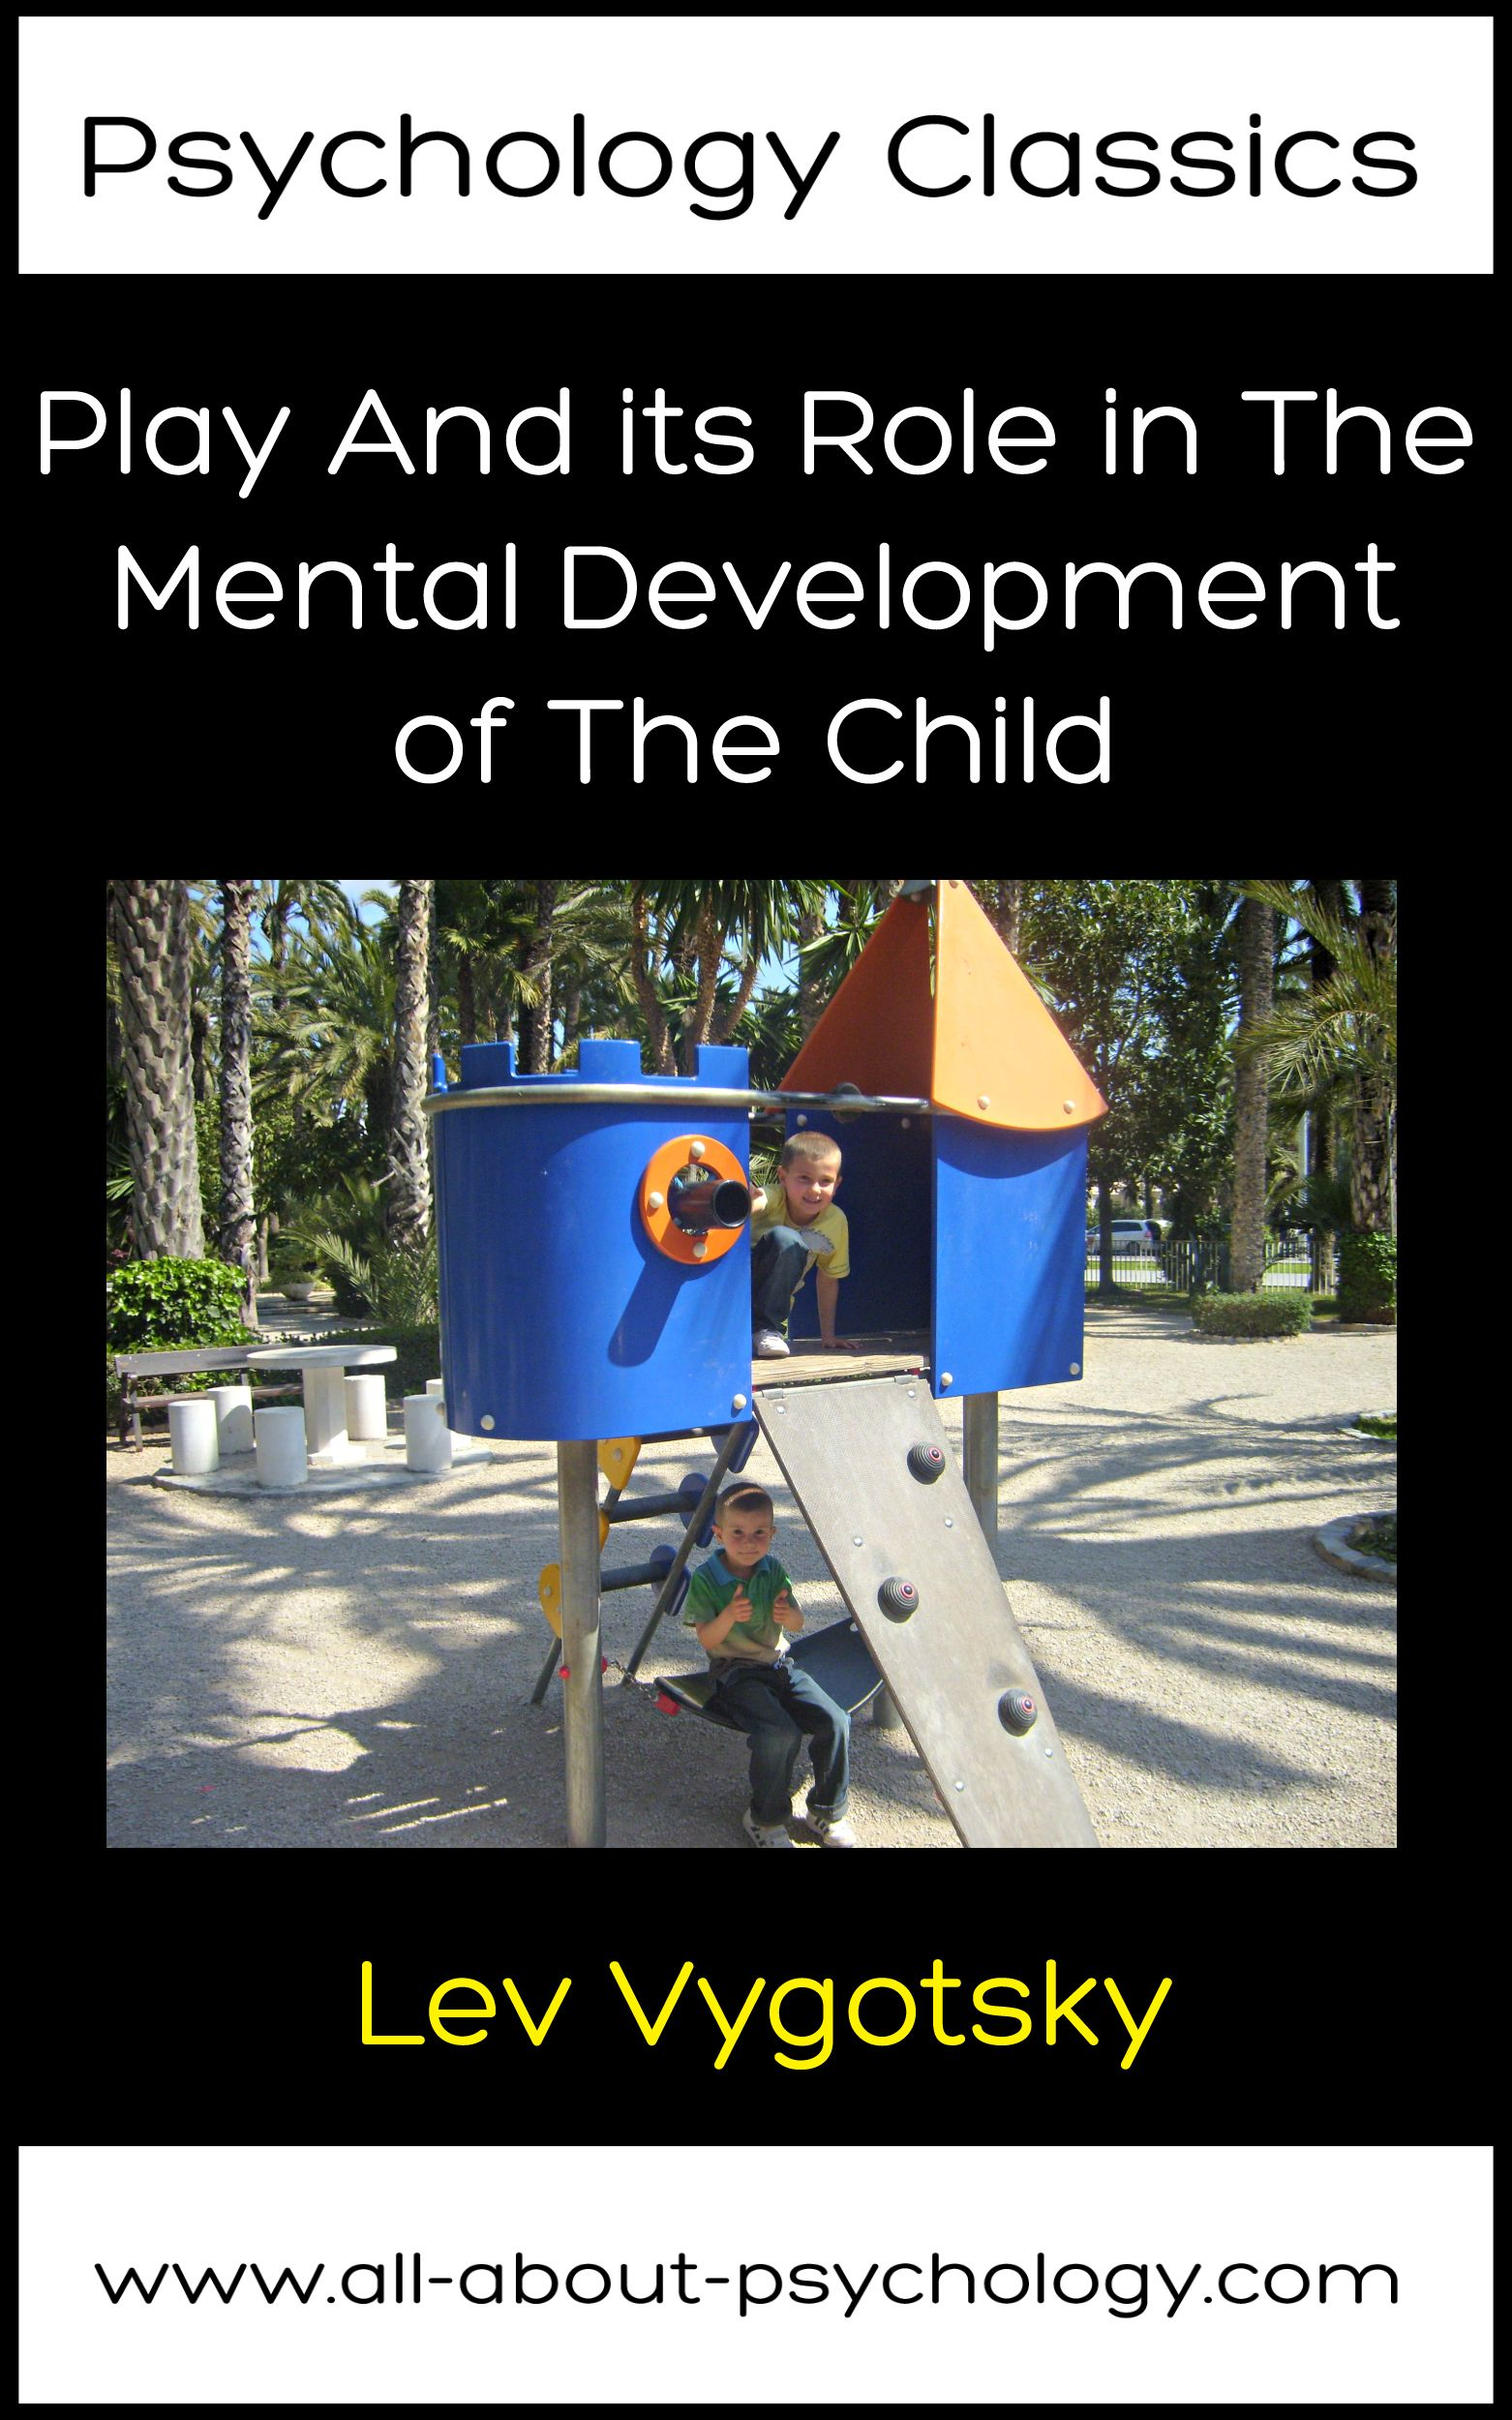 As Part Of The The Free Psychology Books Initiative Www All About Psychology Com Free Psychology Book Child Psychology Mental Development Psychology